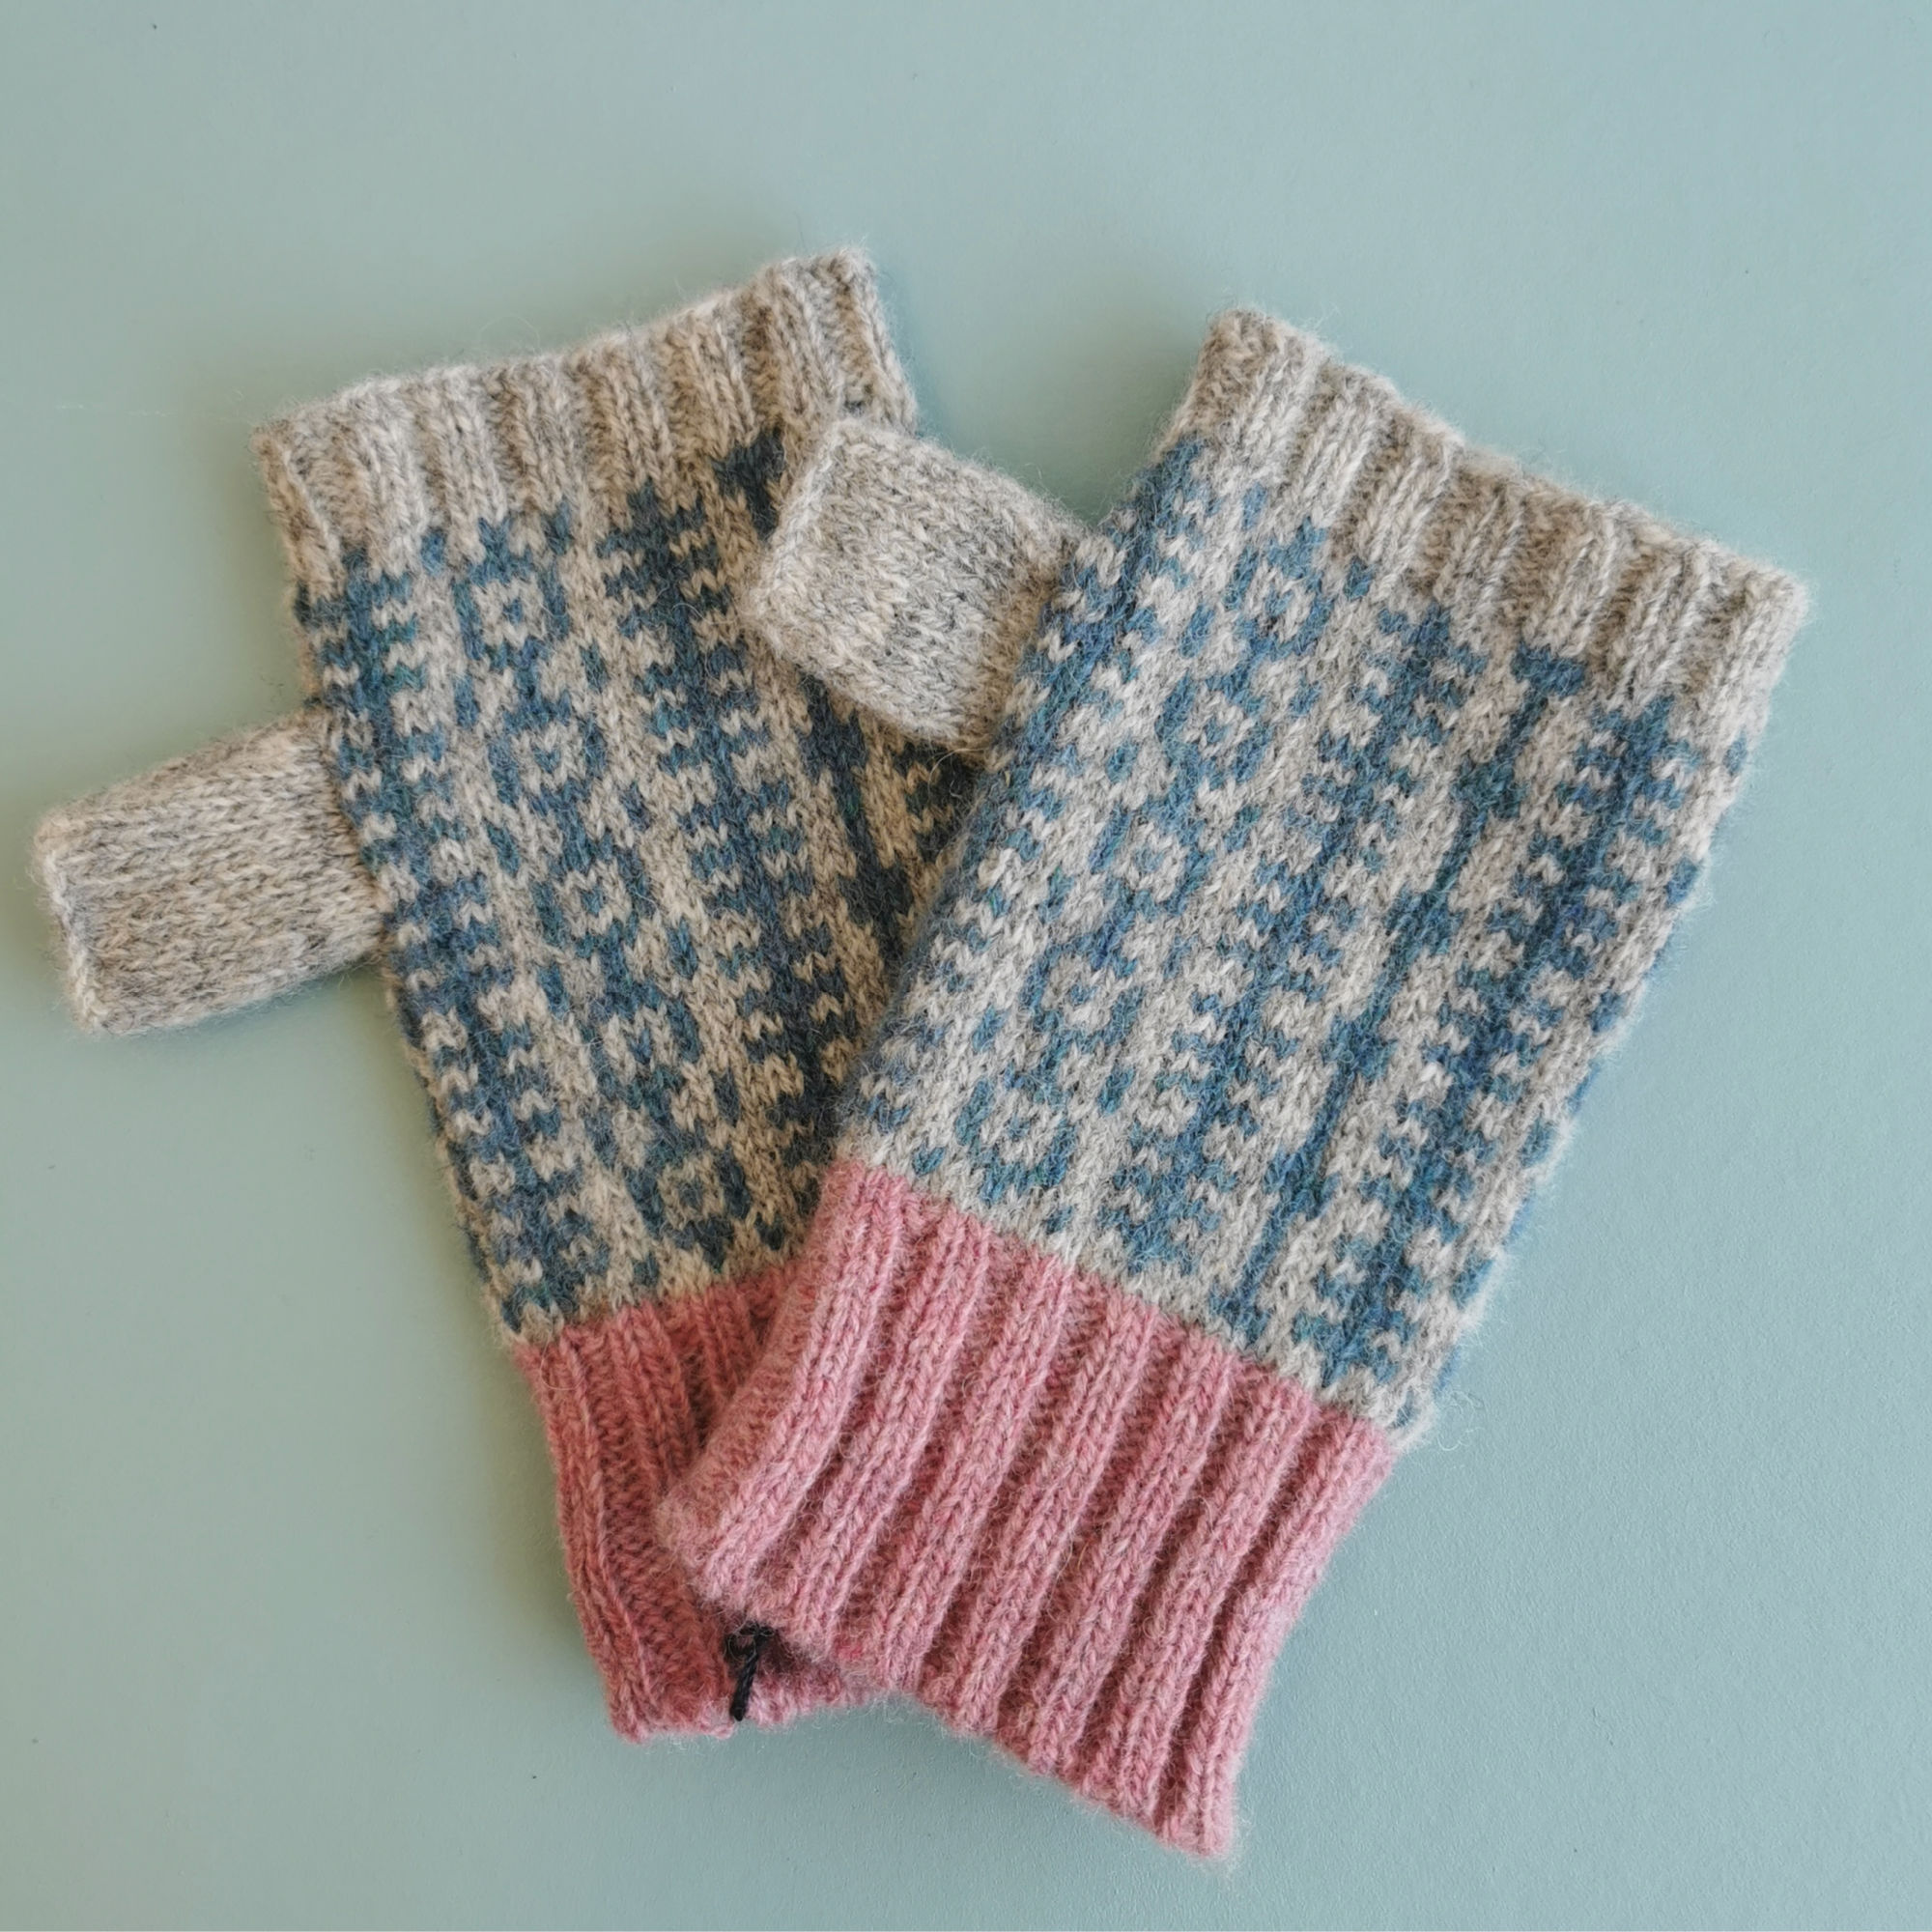 Fingerless Gloves by Scarlet Knitwear